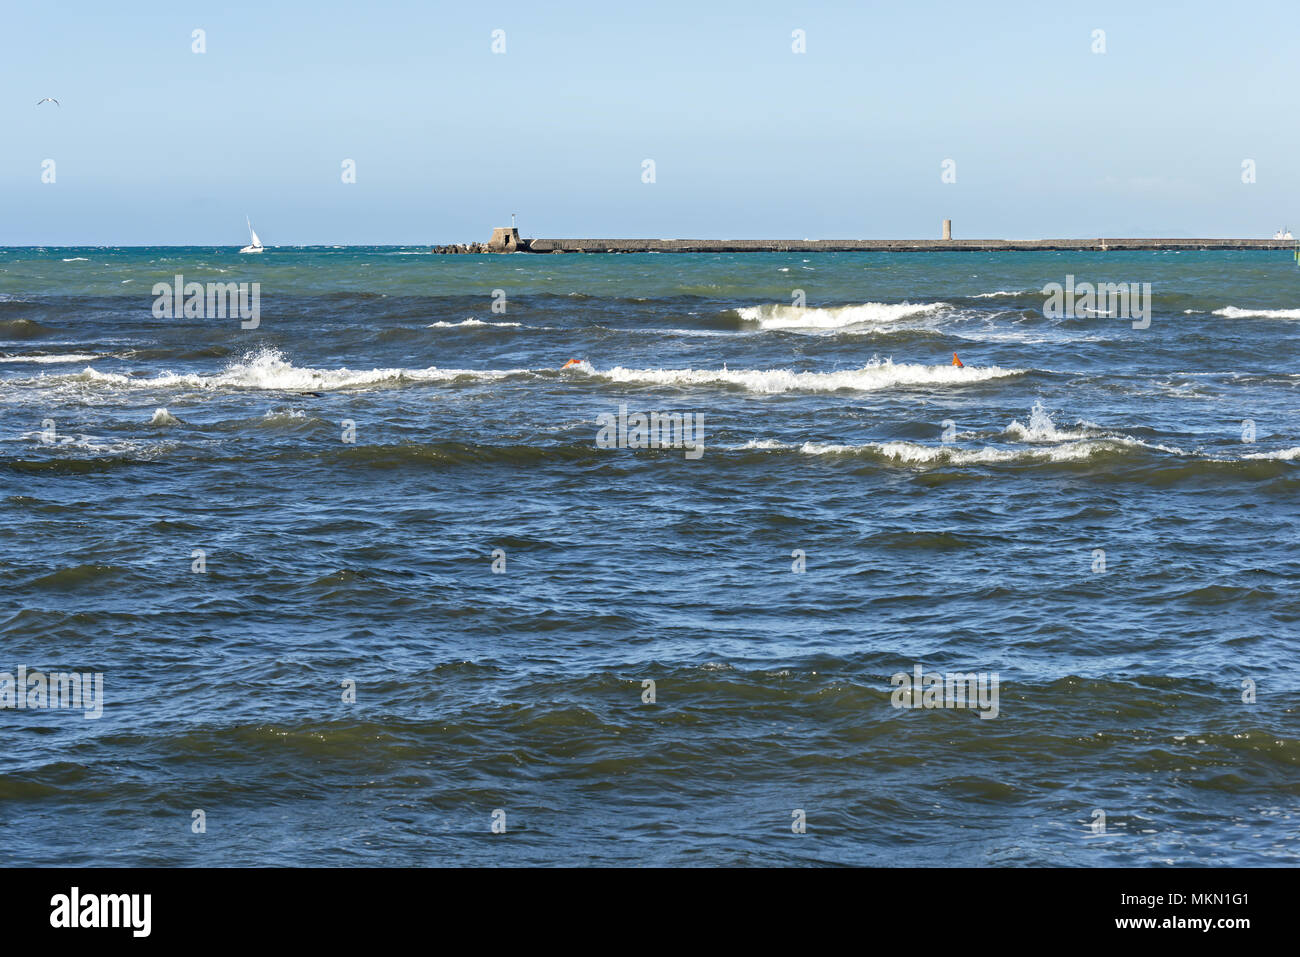 Europe Italy Tuscany Livorno Terrazza a Mare 25 Stock Photo ...